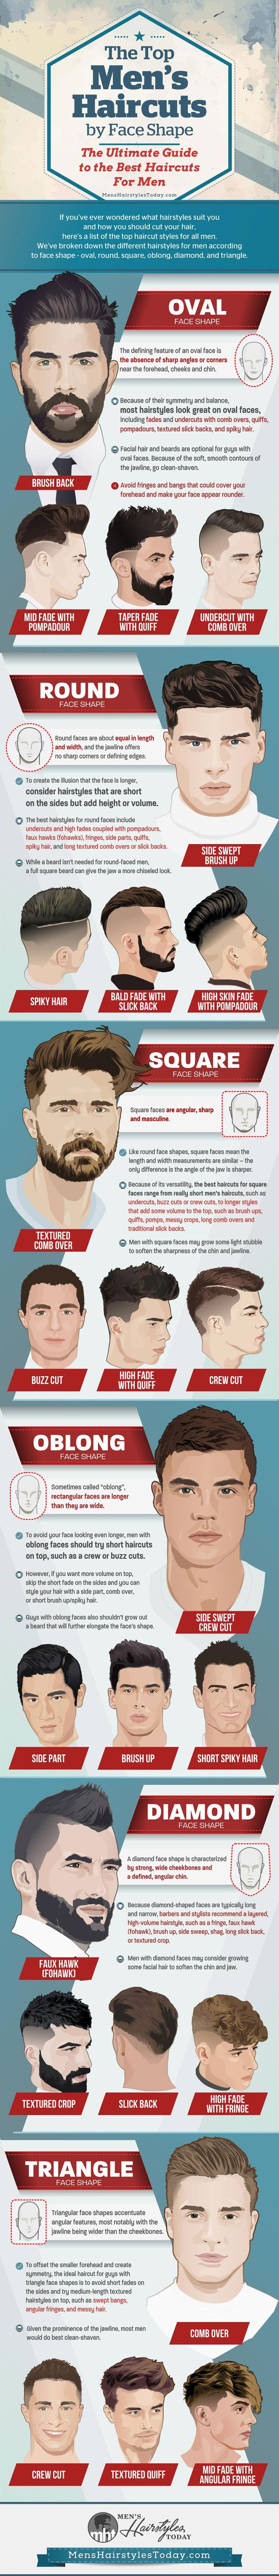 Best Haircuts For Men By Face Shape #Infographic #Fashion #LifeStyle